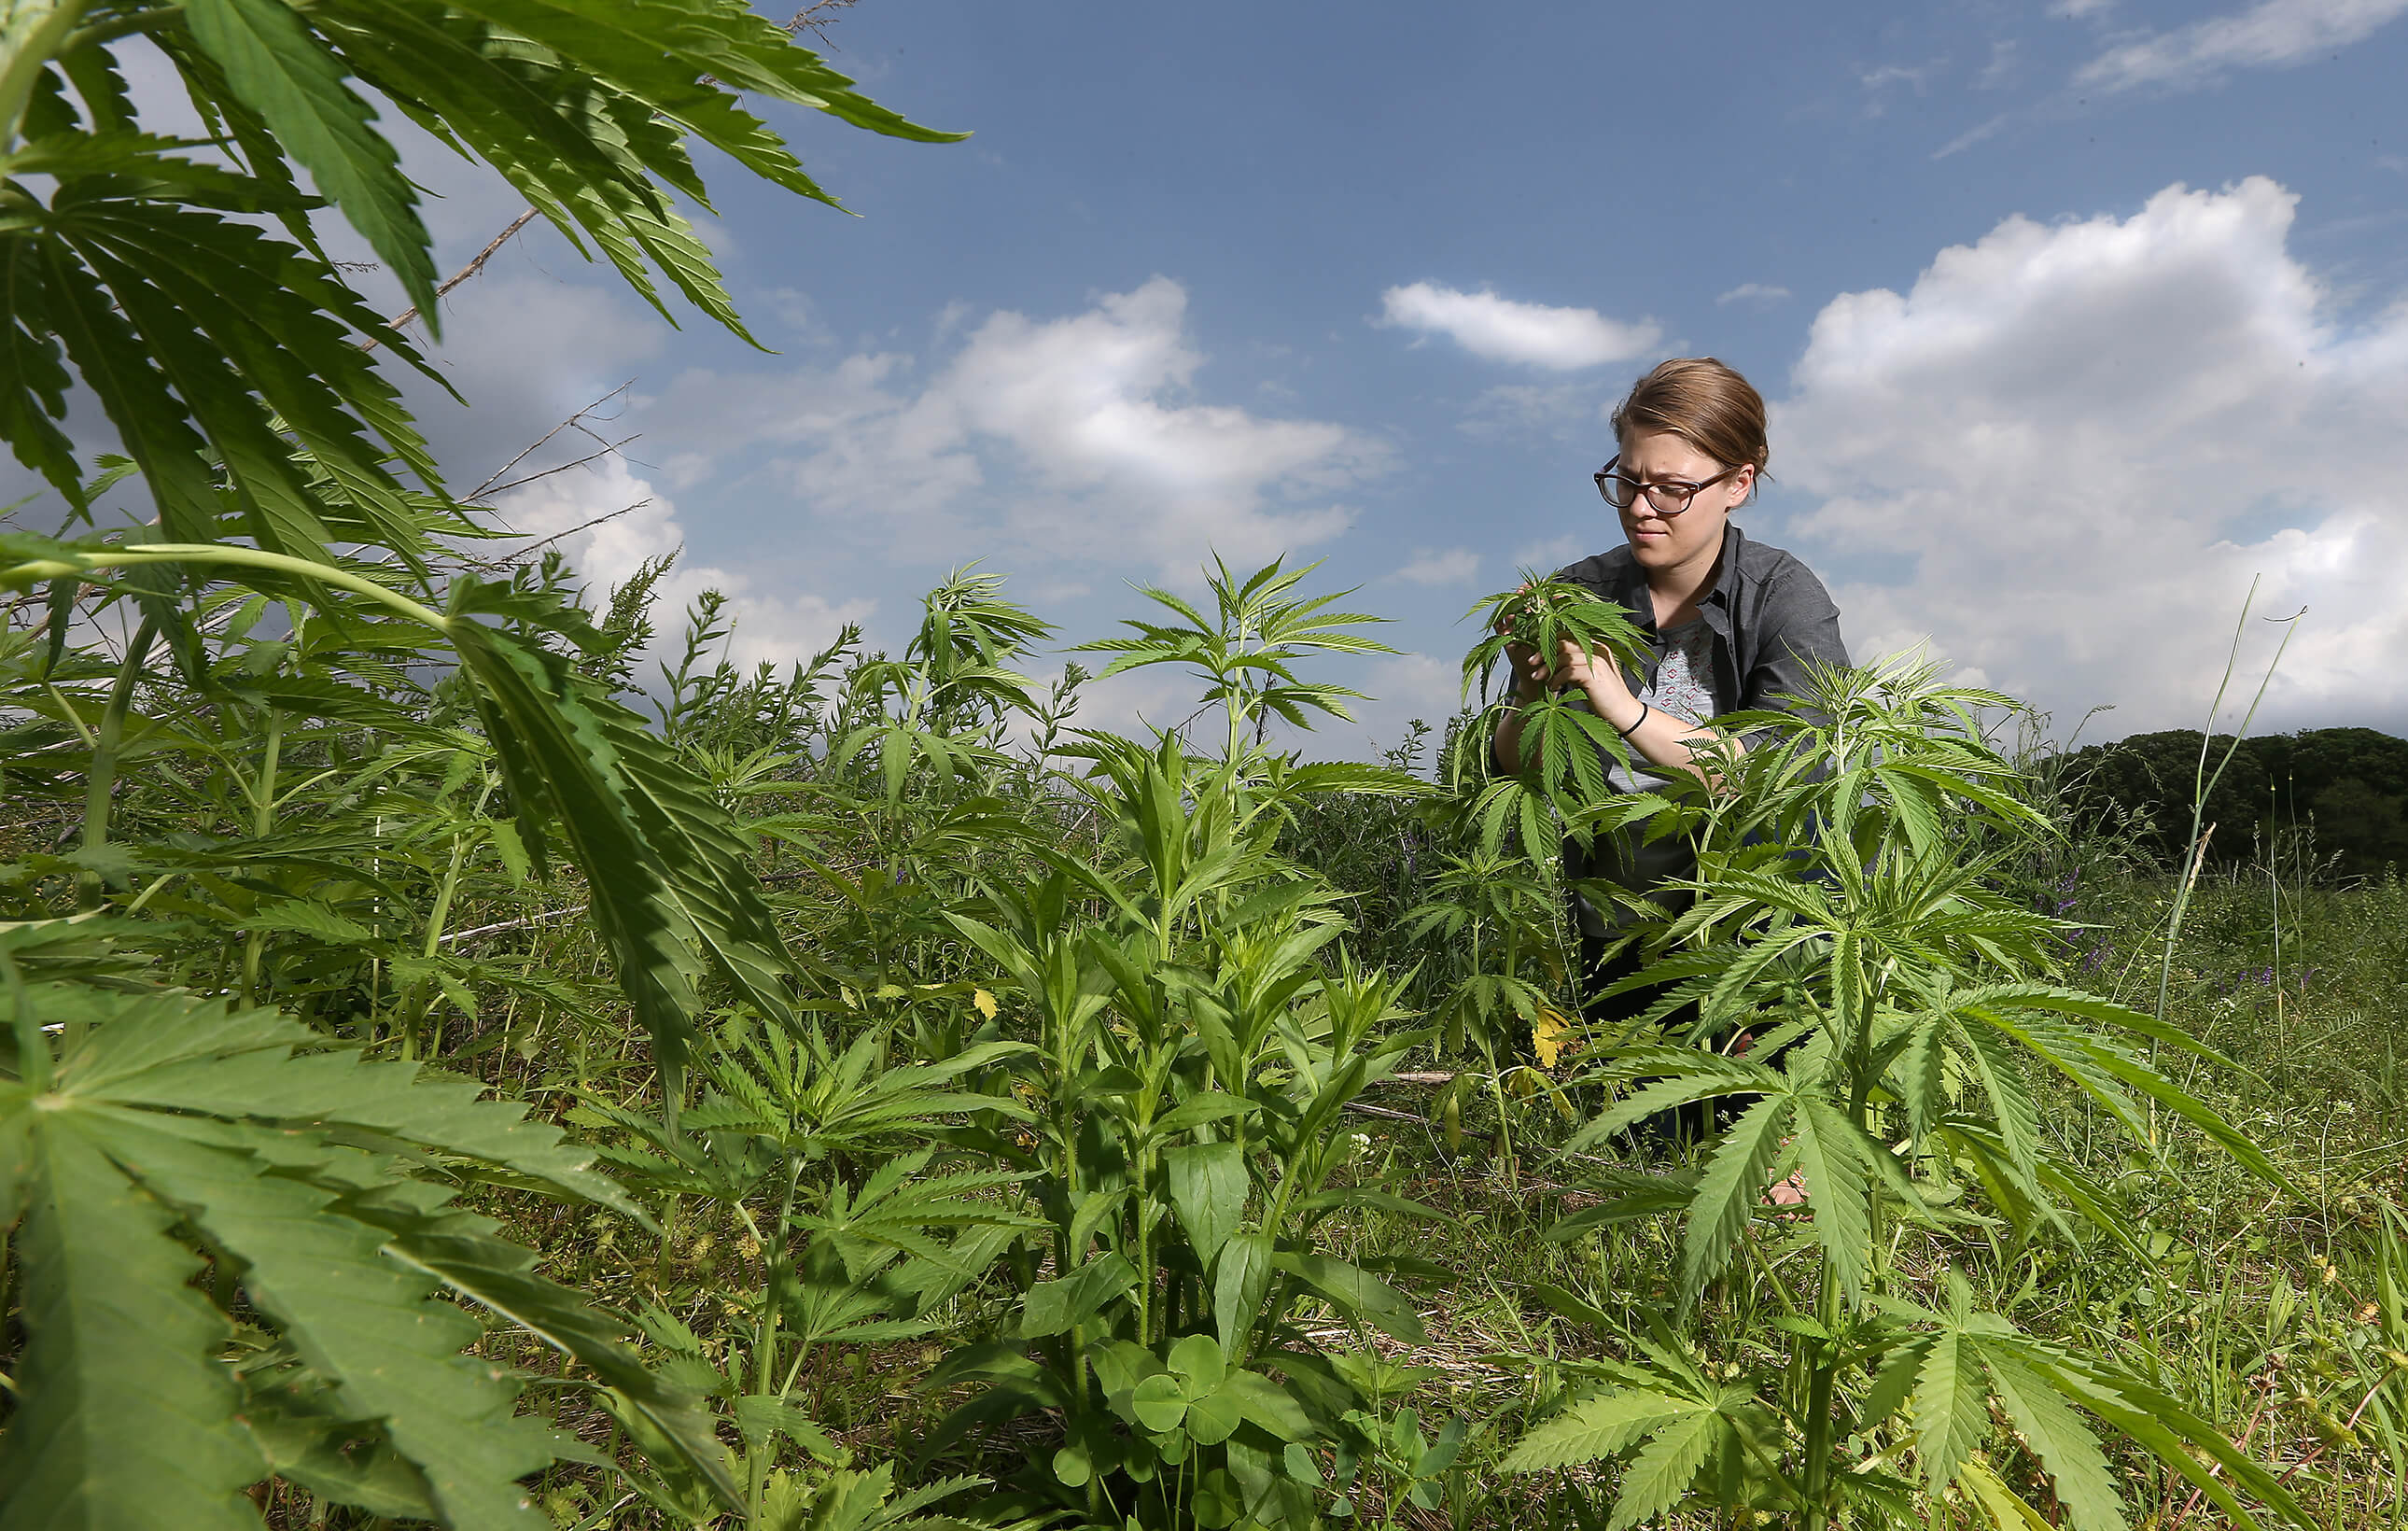 photo of Farmers can now apply for hemp production licenses through USDA image